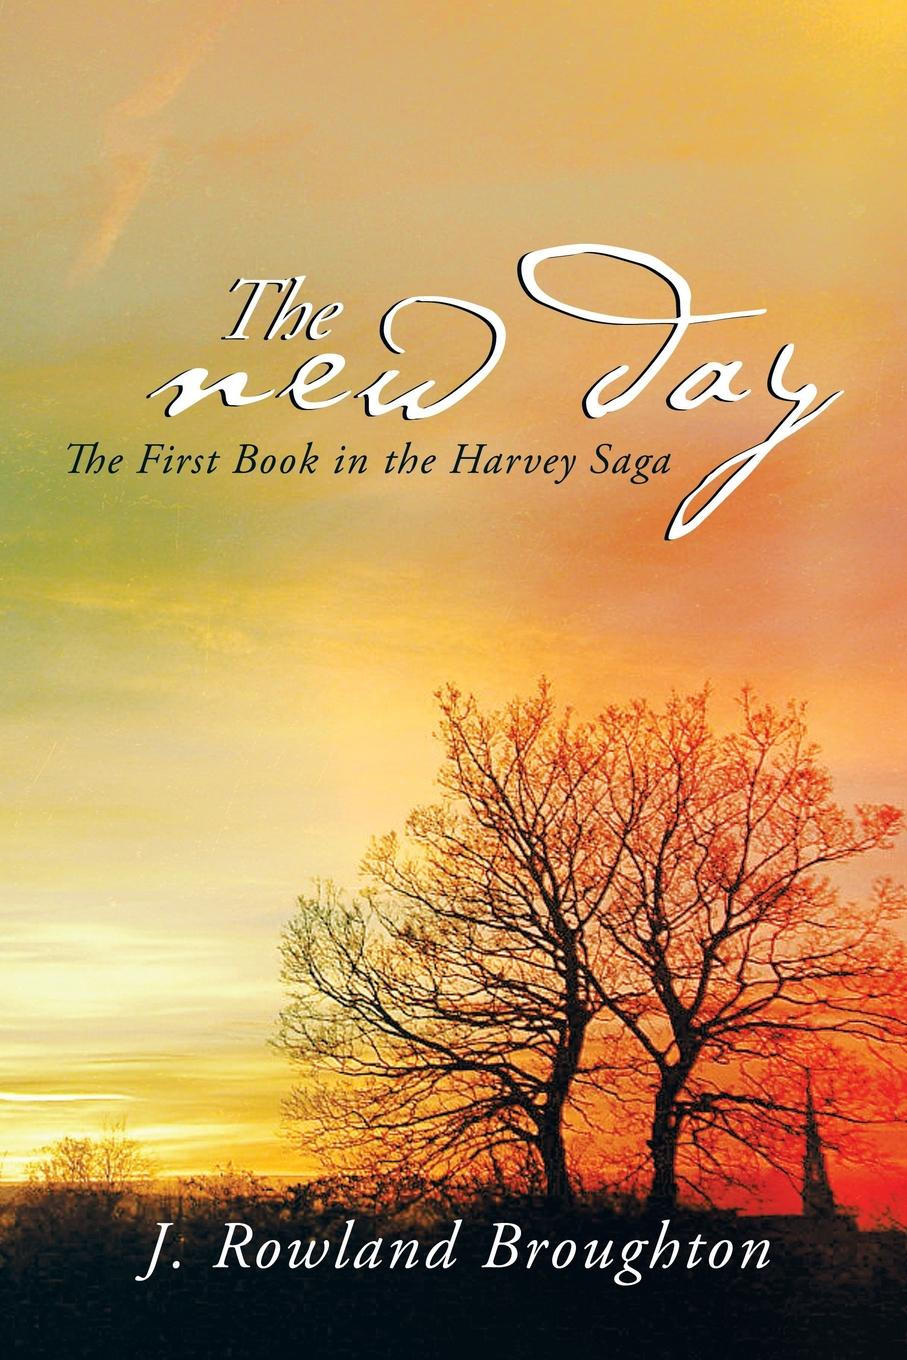 J. Rowland Broughton The New Day. The First Book in the Harvey Saga our first book